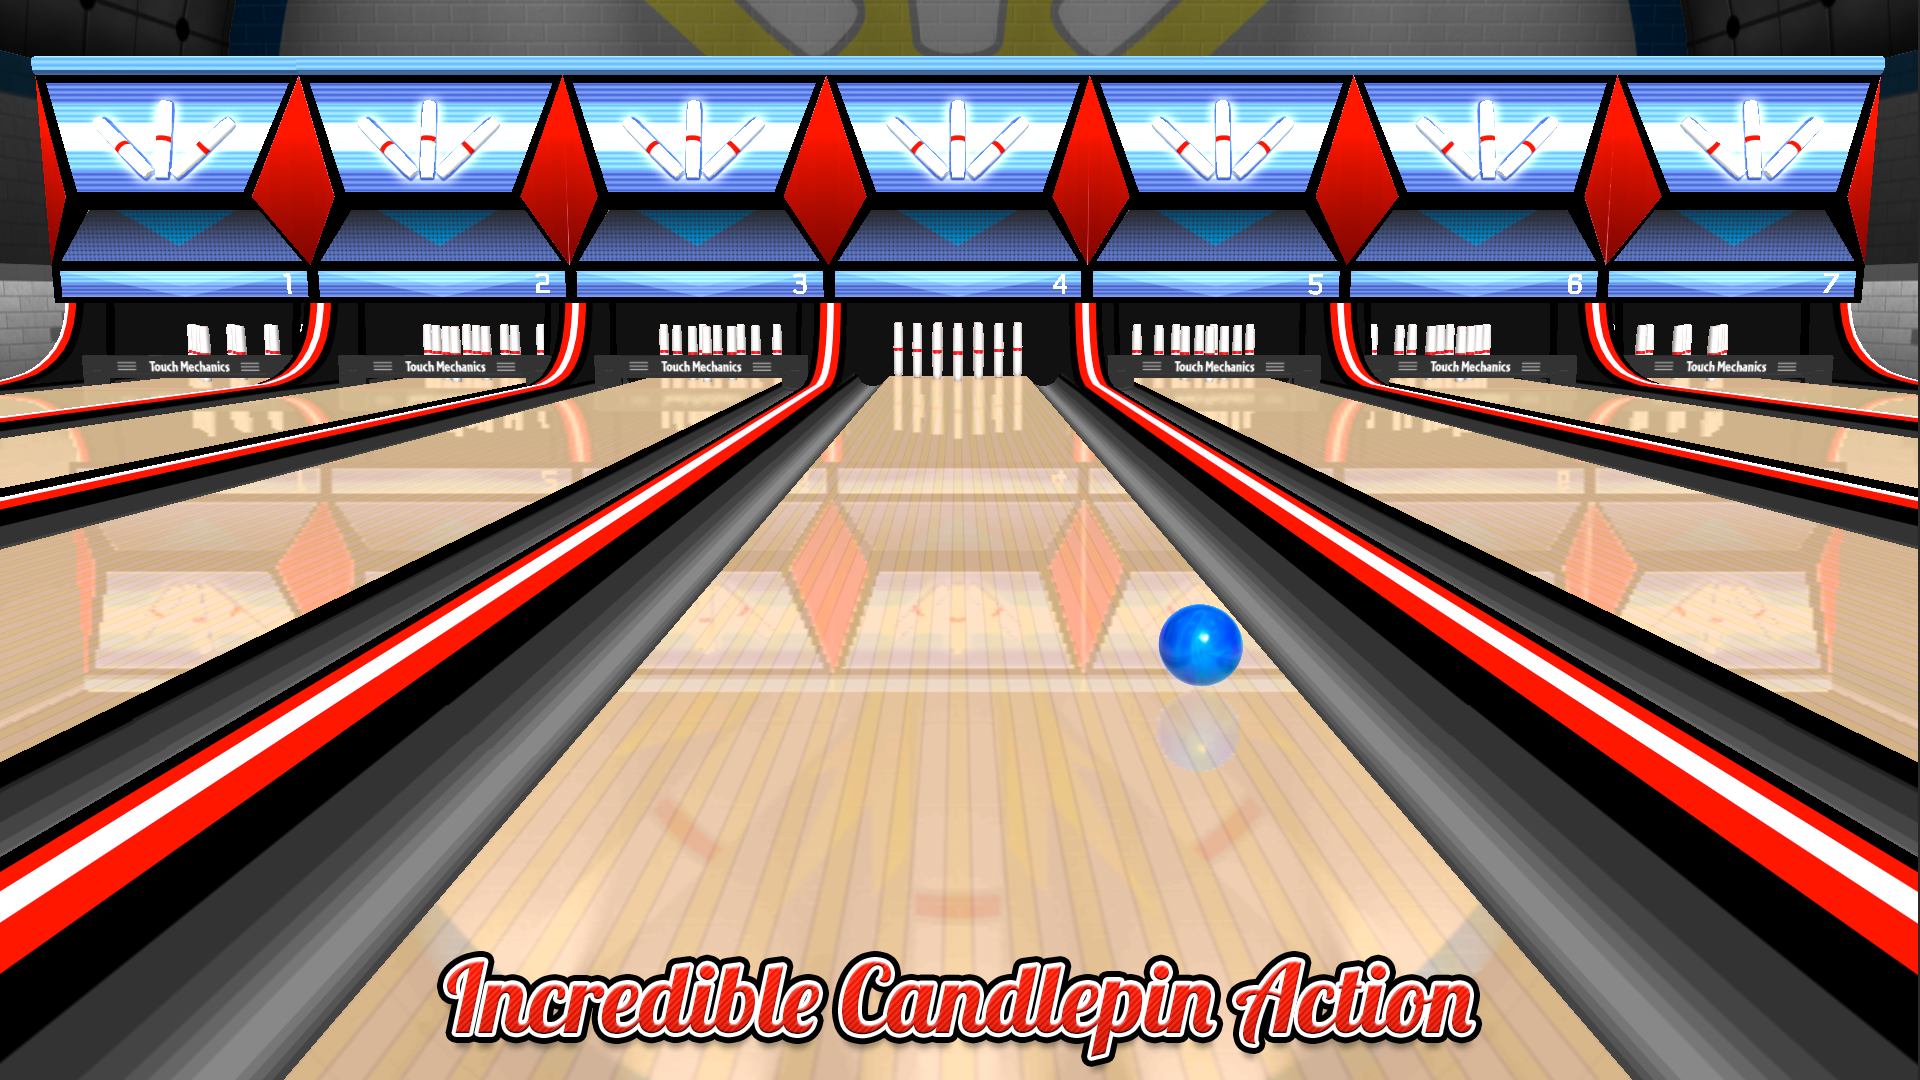 Strike! Ten Pin Bowling screenshot 18